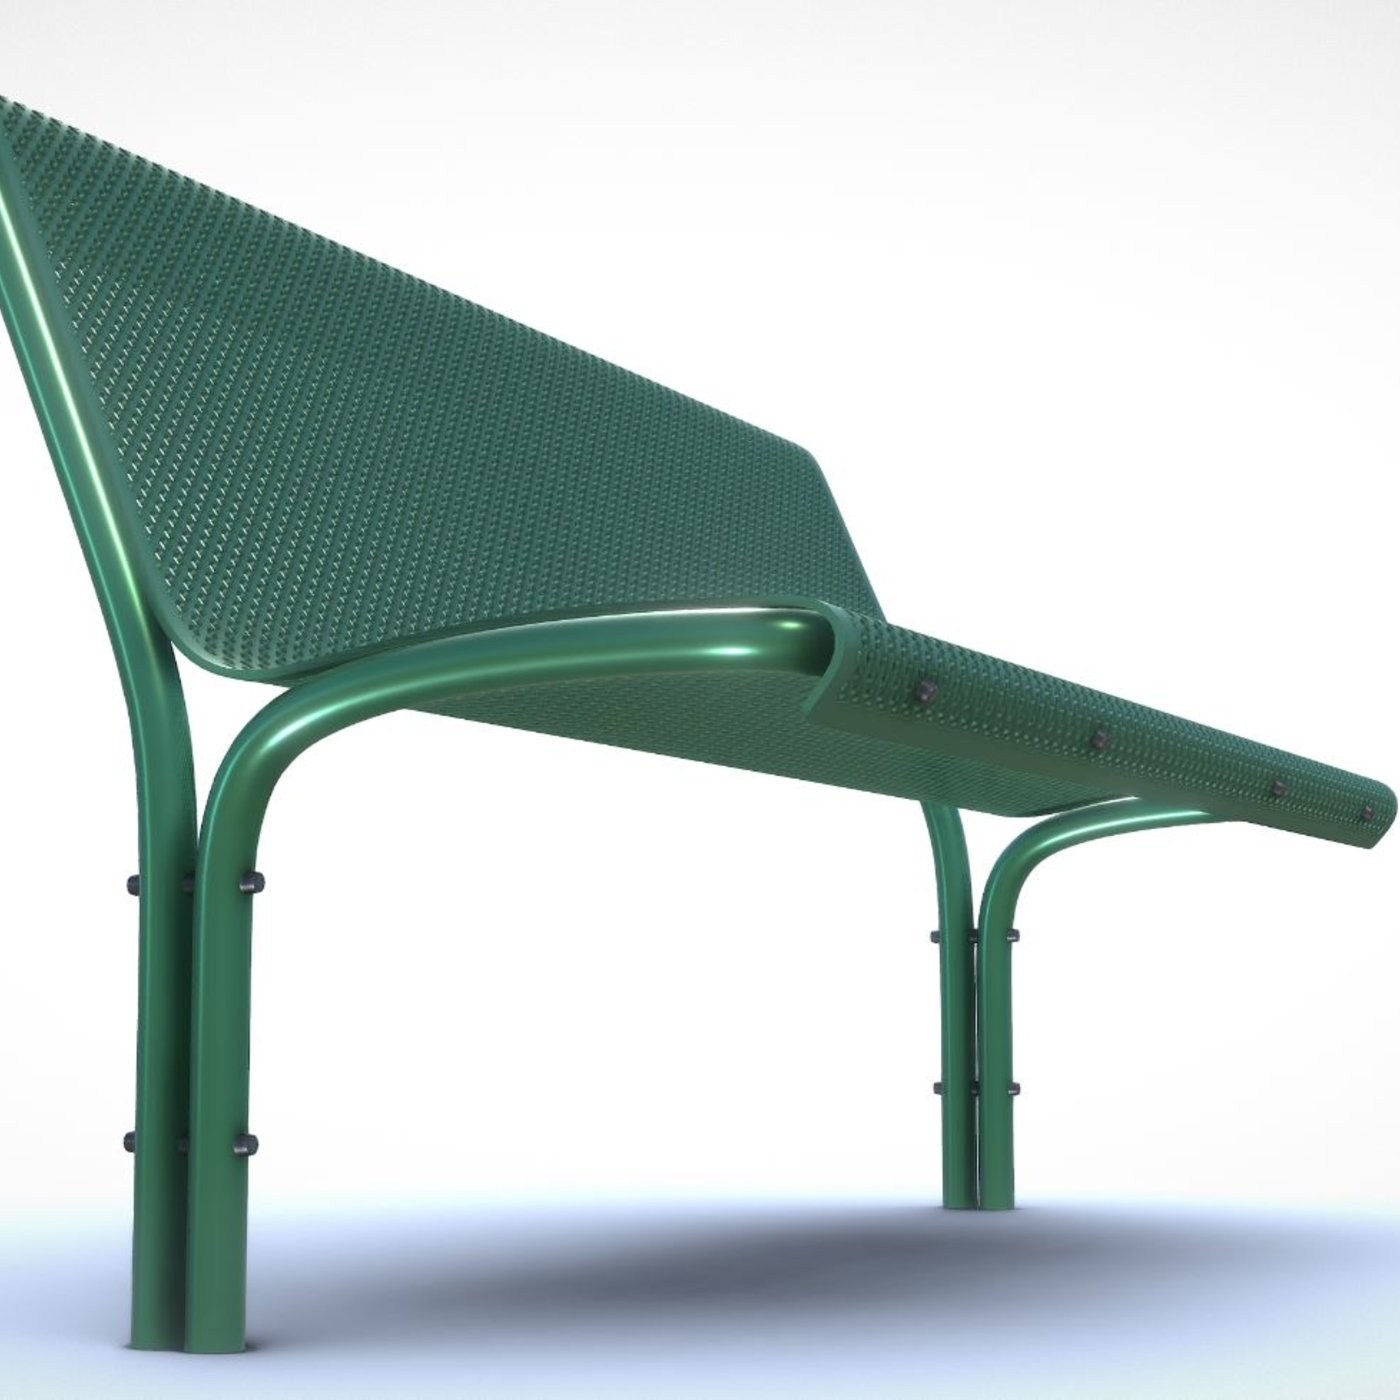 Park Bench Number 3 (High- and Low-Poly Version)